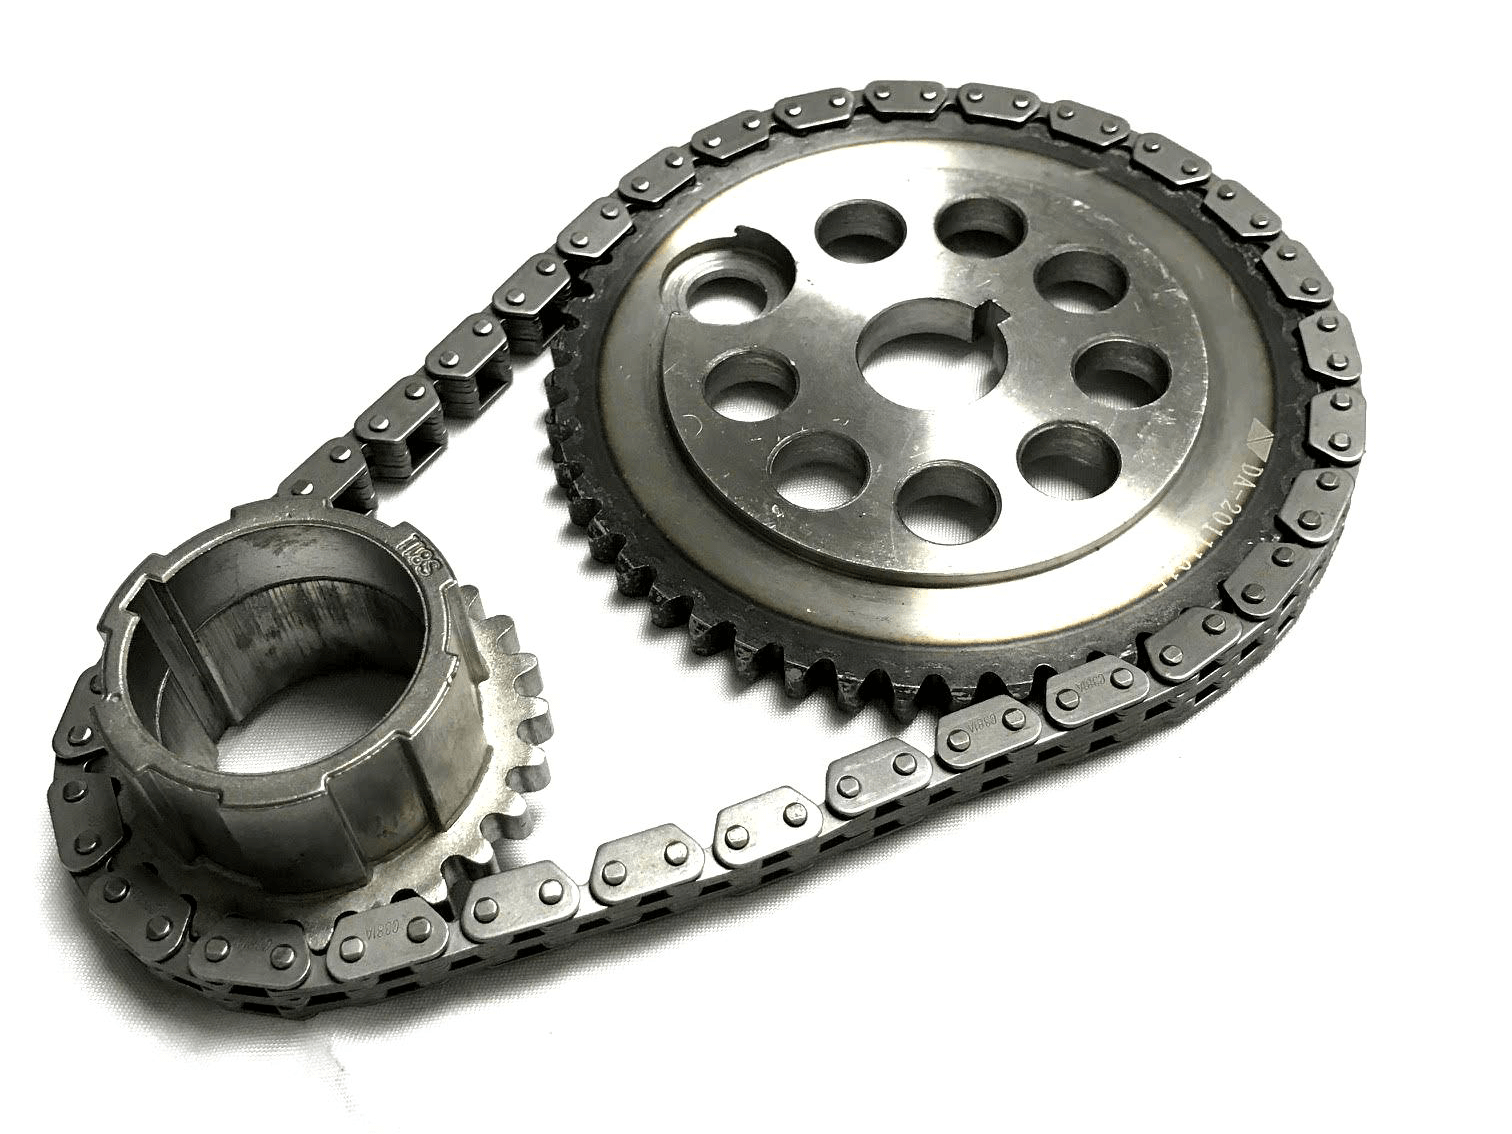 Know more about the Timing Chain Kit